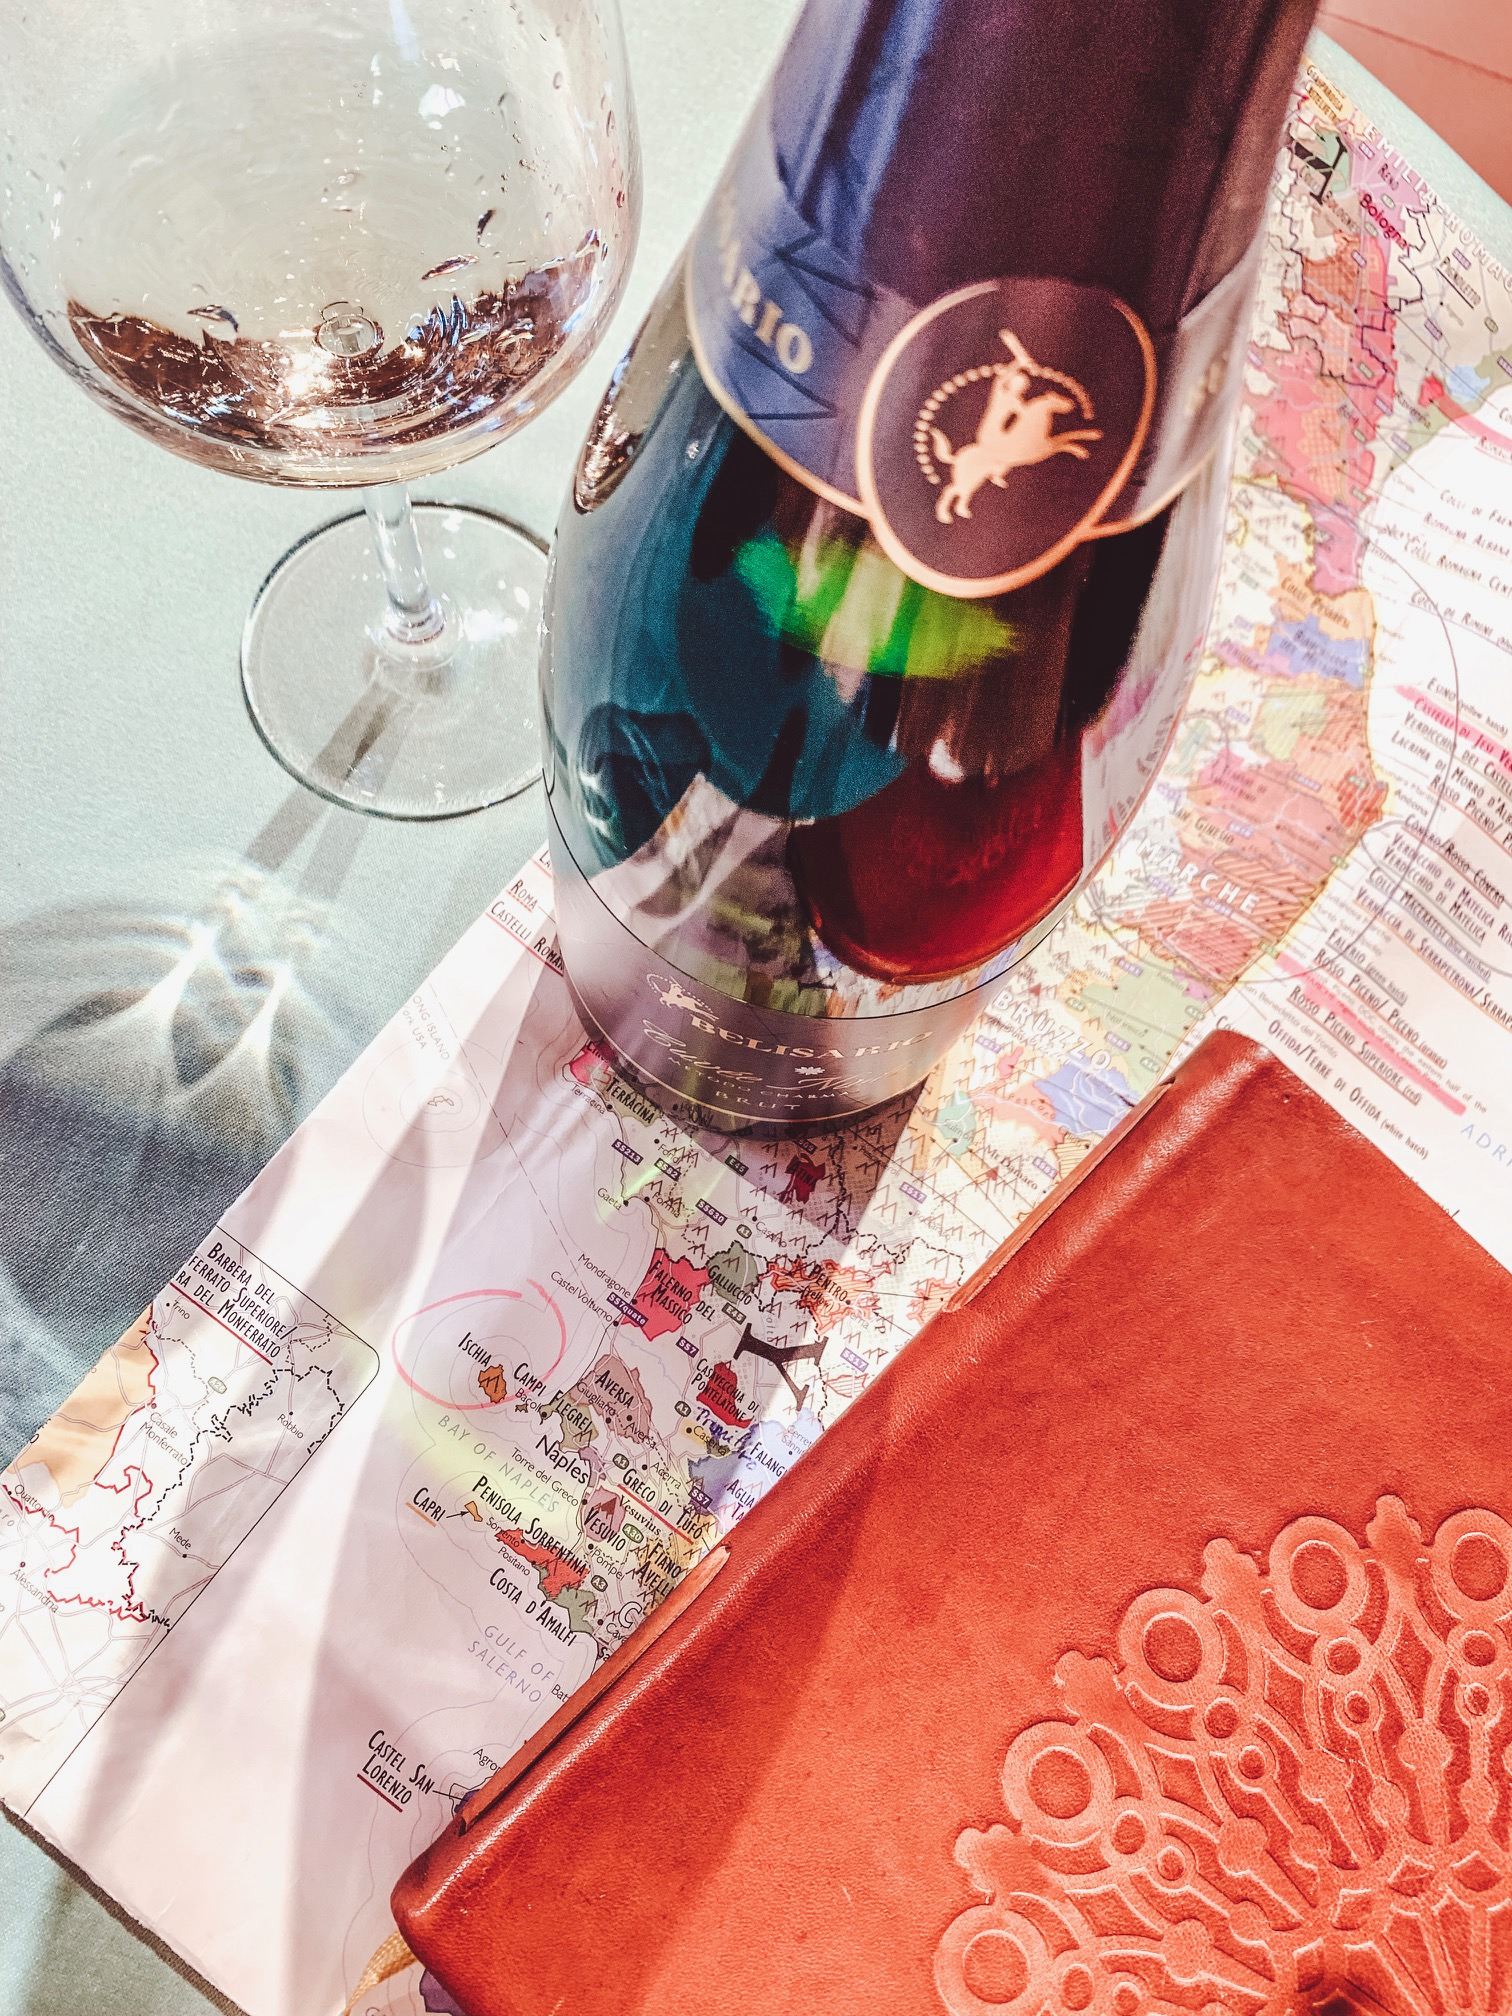 The marked up wine map that would make Magellan proud